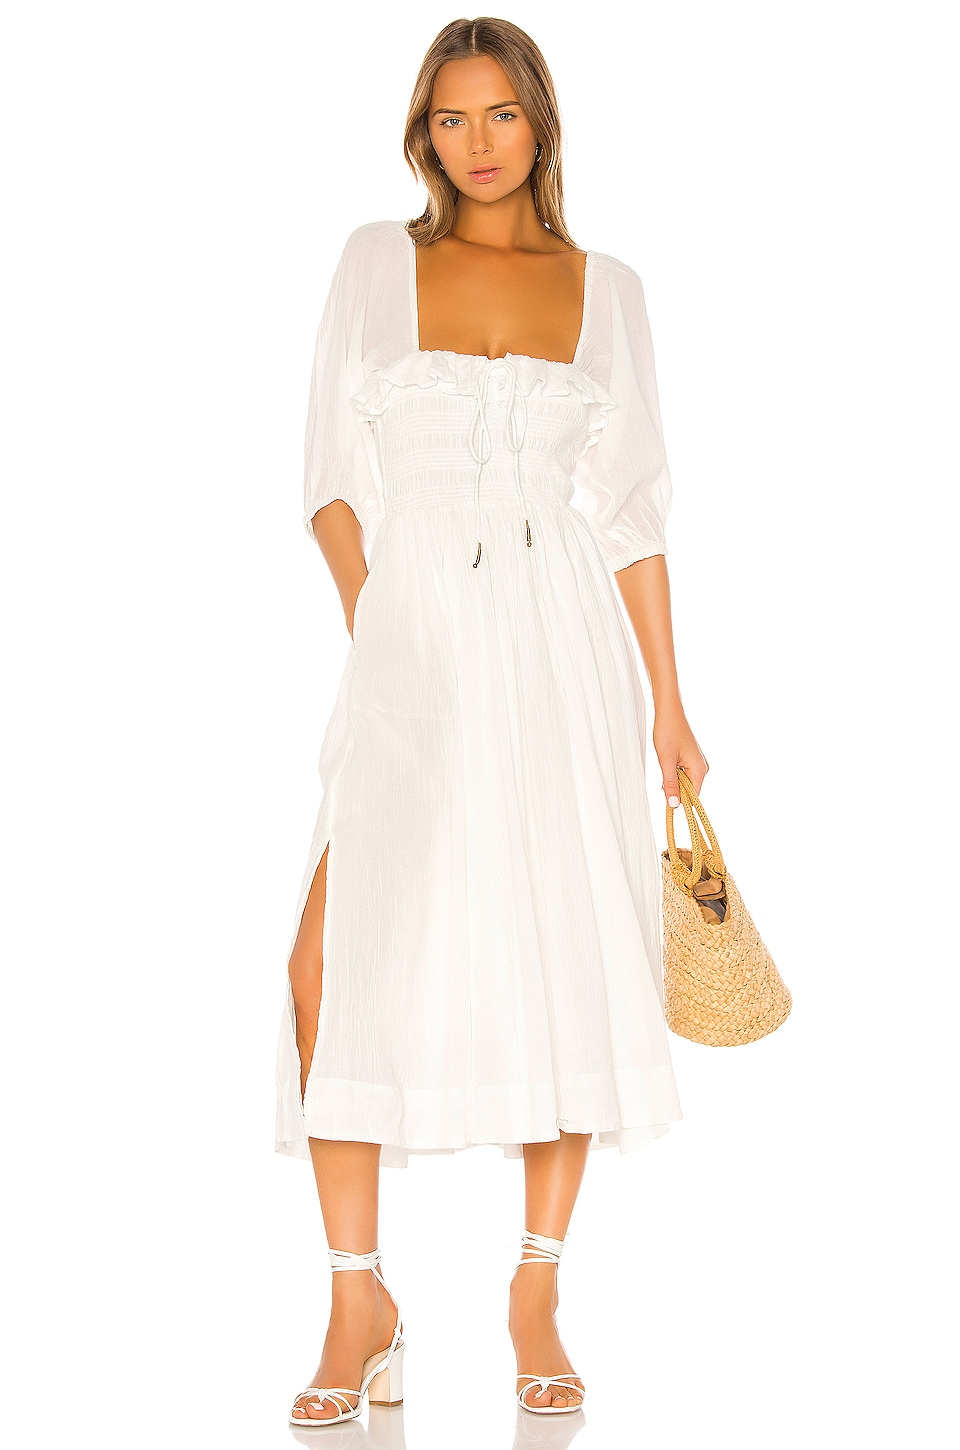 Free People Oasis Midi Dress in Ivory